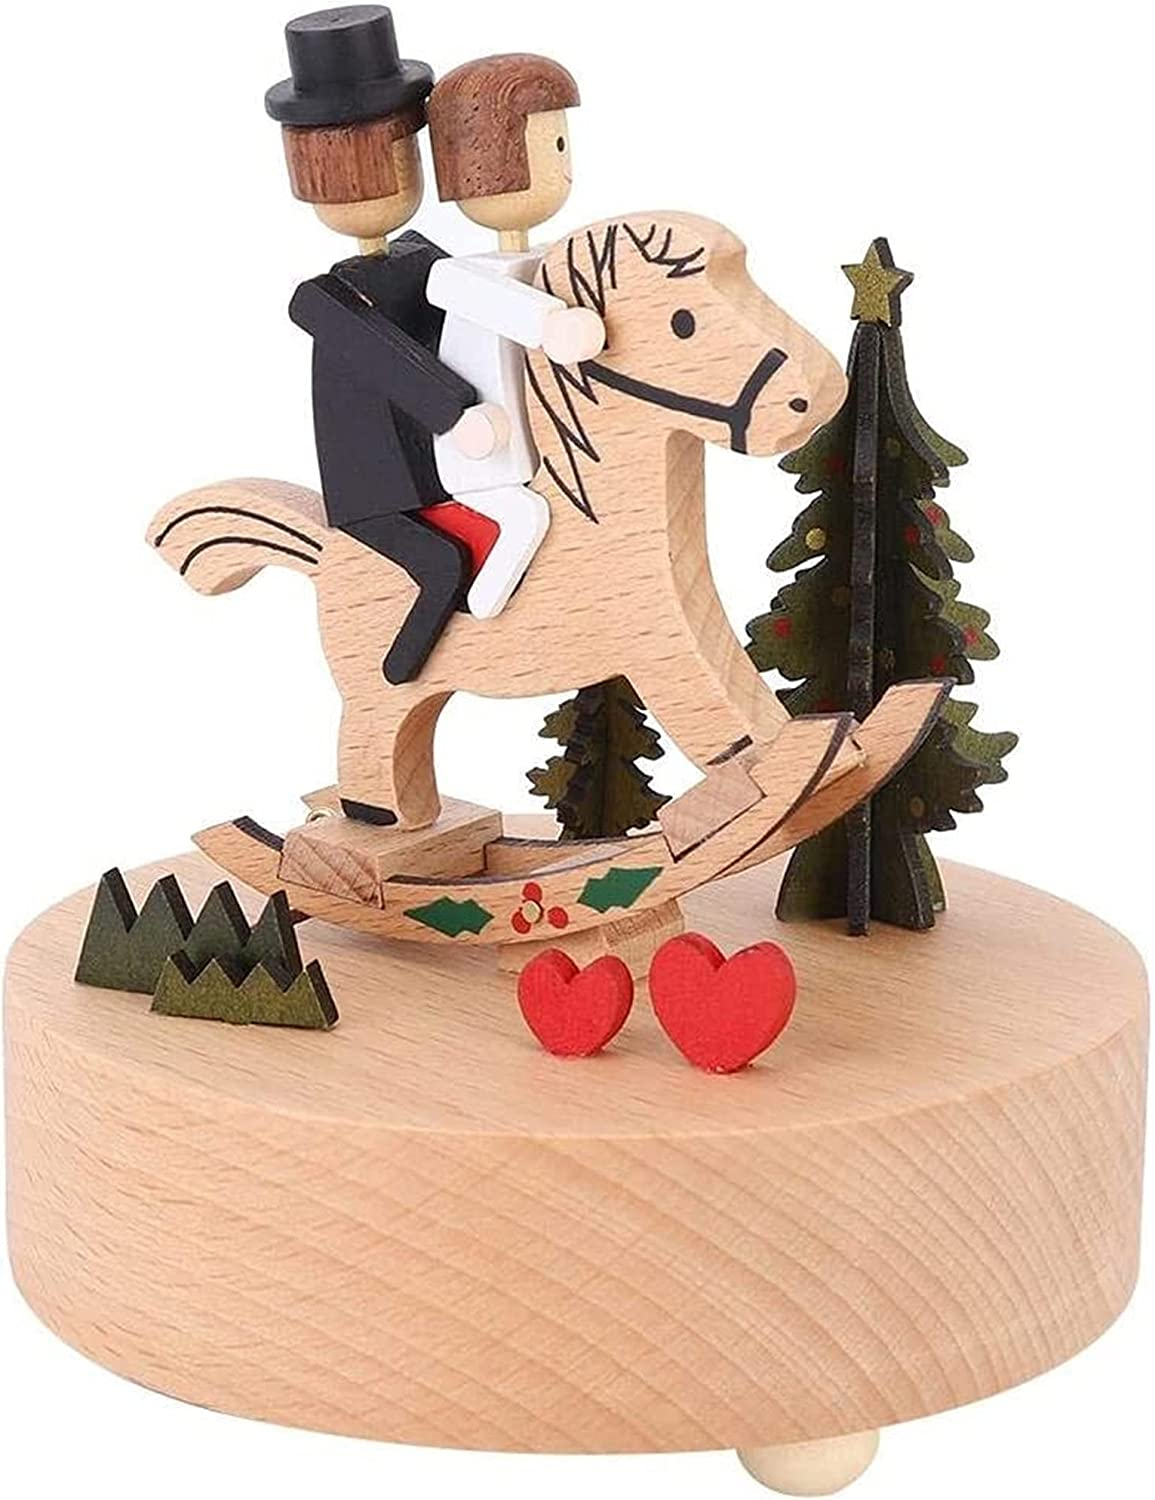 Bombing new work Home Decor Fashionable Carousel Music Box Turn Wooden Horse Hors Musical